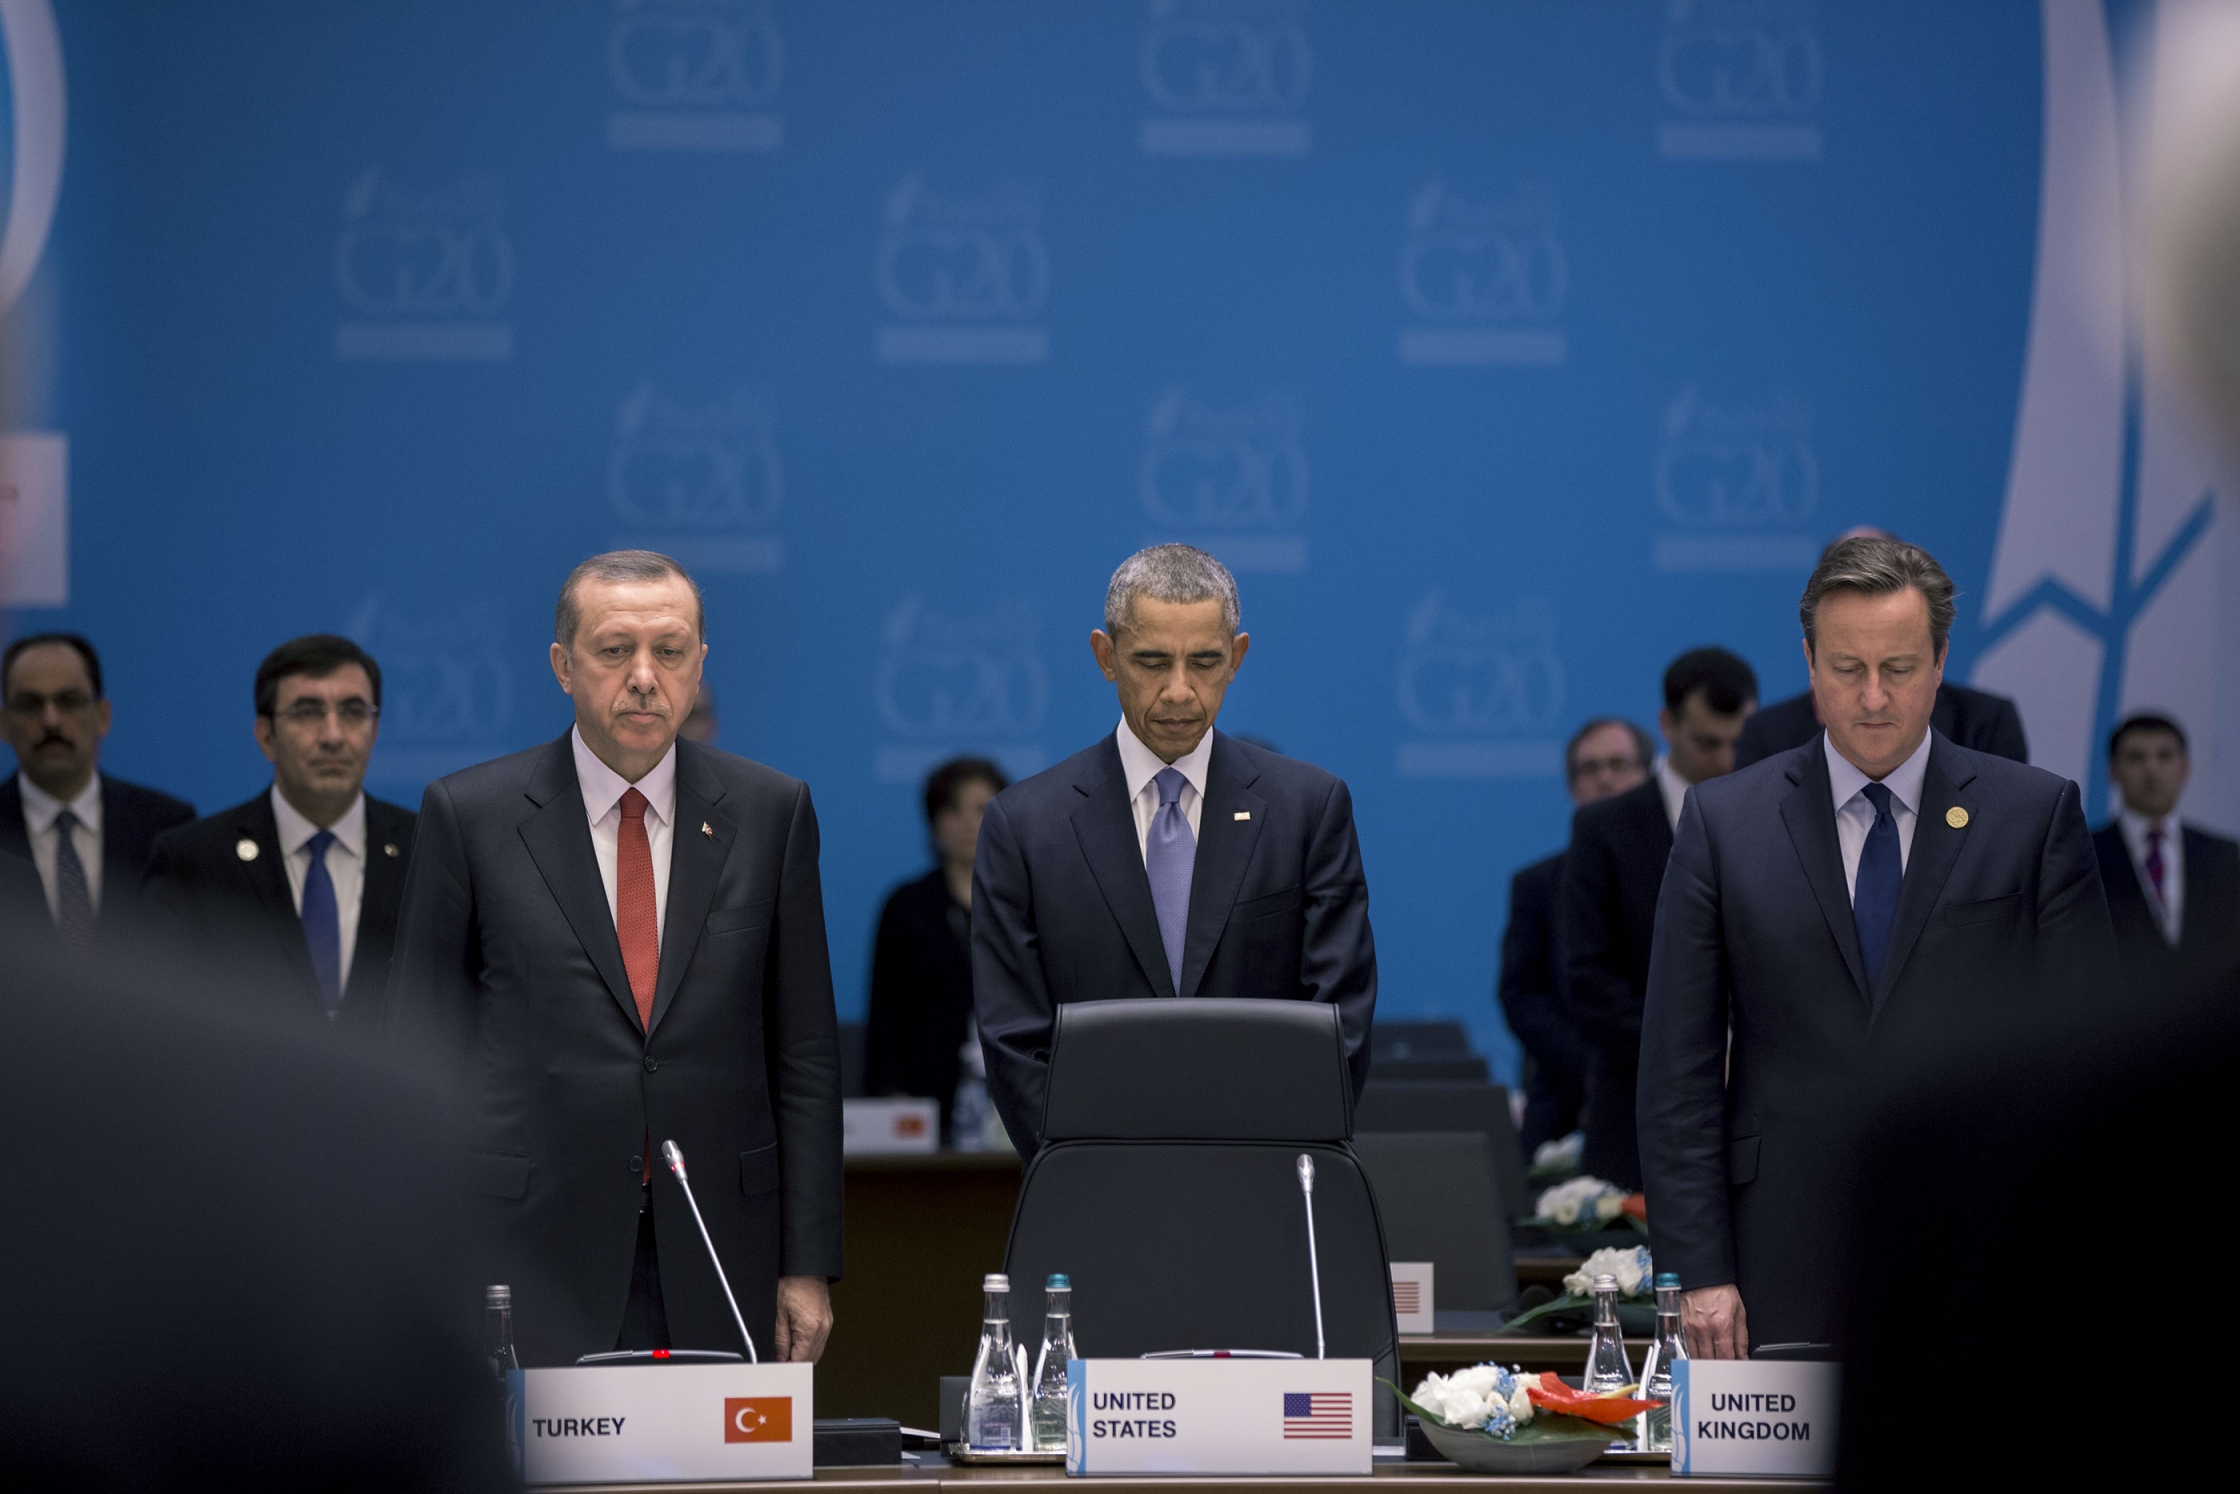 Turkey Coming Under Increasing International Pressure To Cease Its Attacks On The Kurds Featured